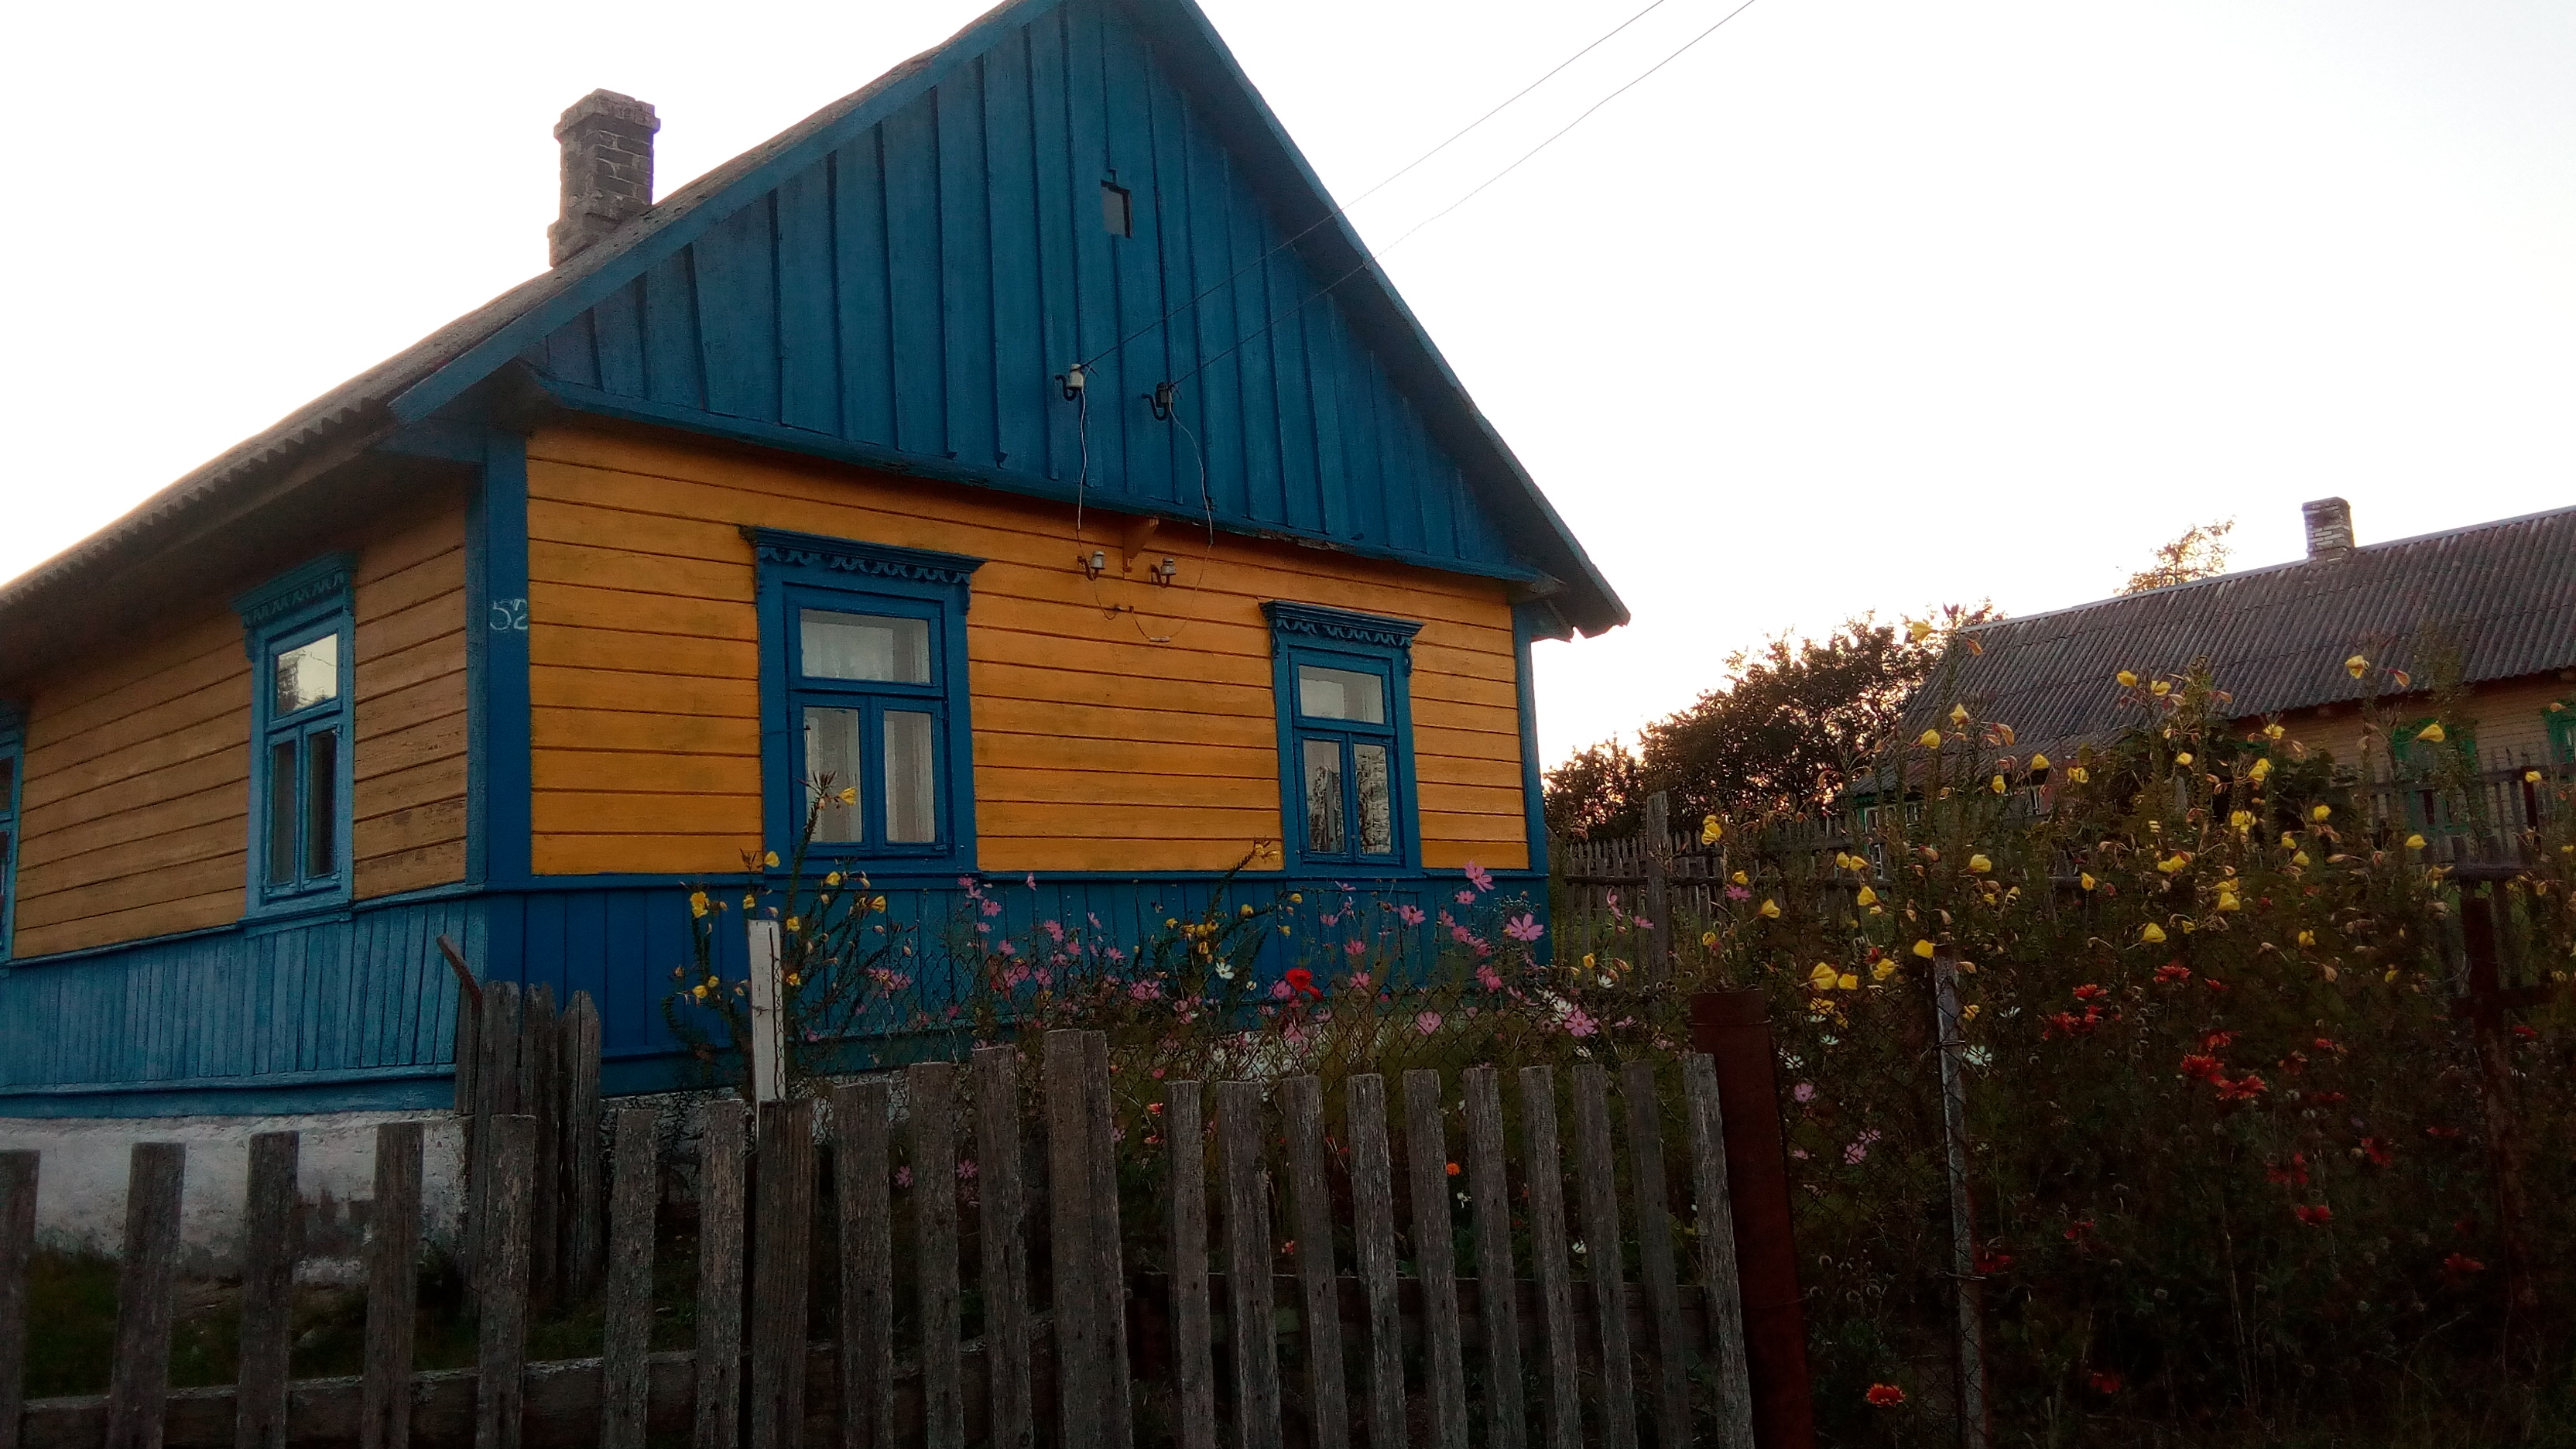 Rusakovo-on-eof-the-beautiful-village-houses